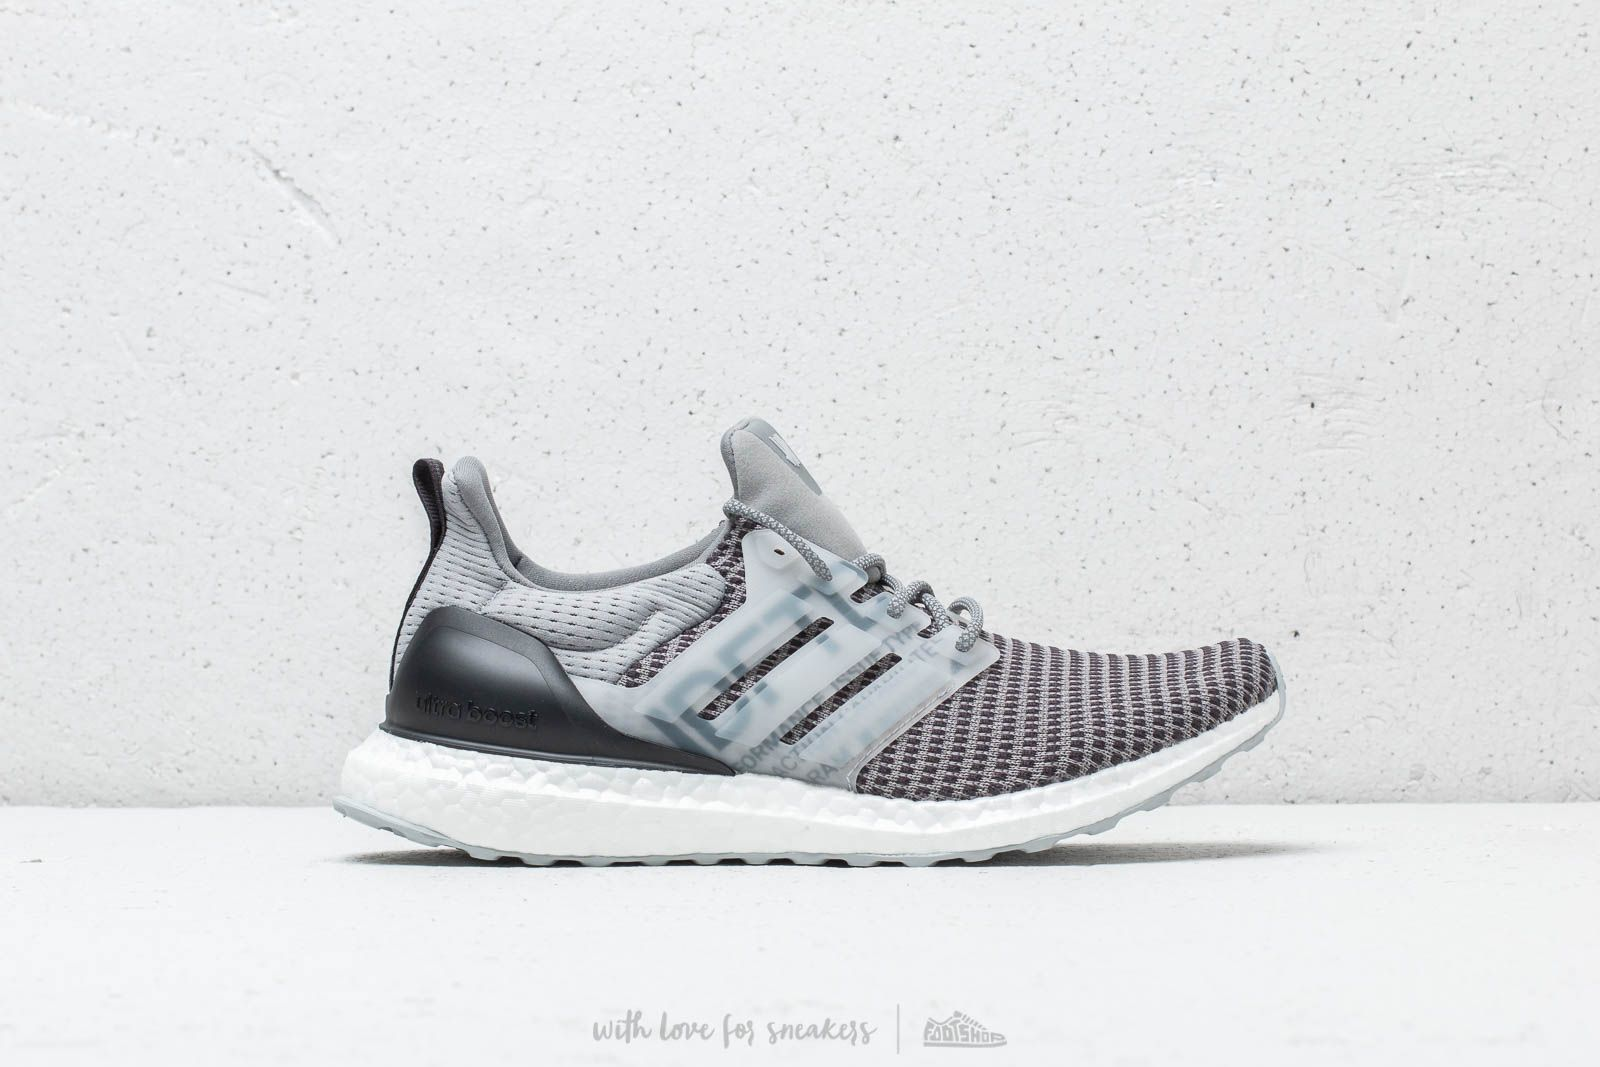 adidas x Undefeated UltraBOOST Clear Onix Clear Onix Clear